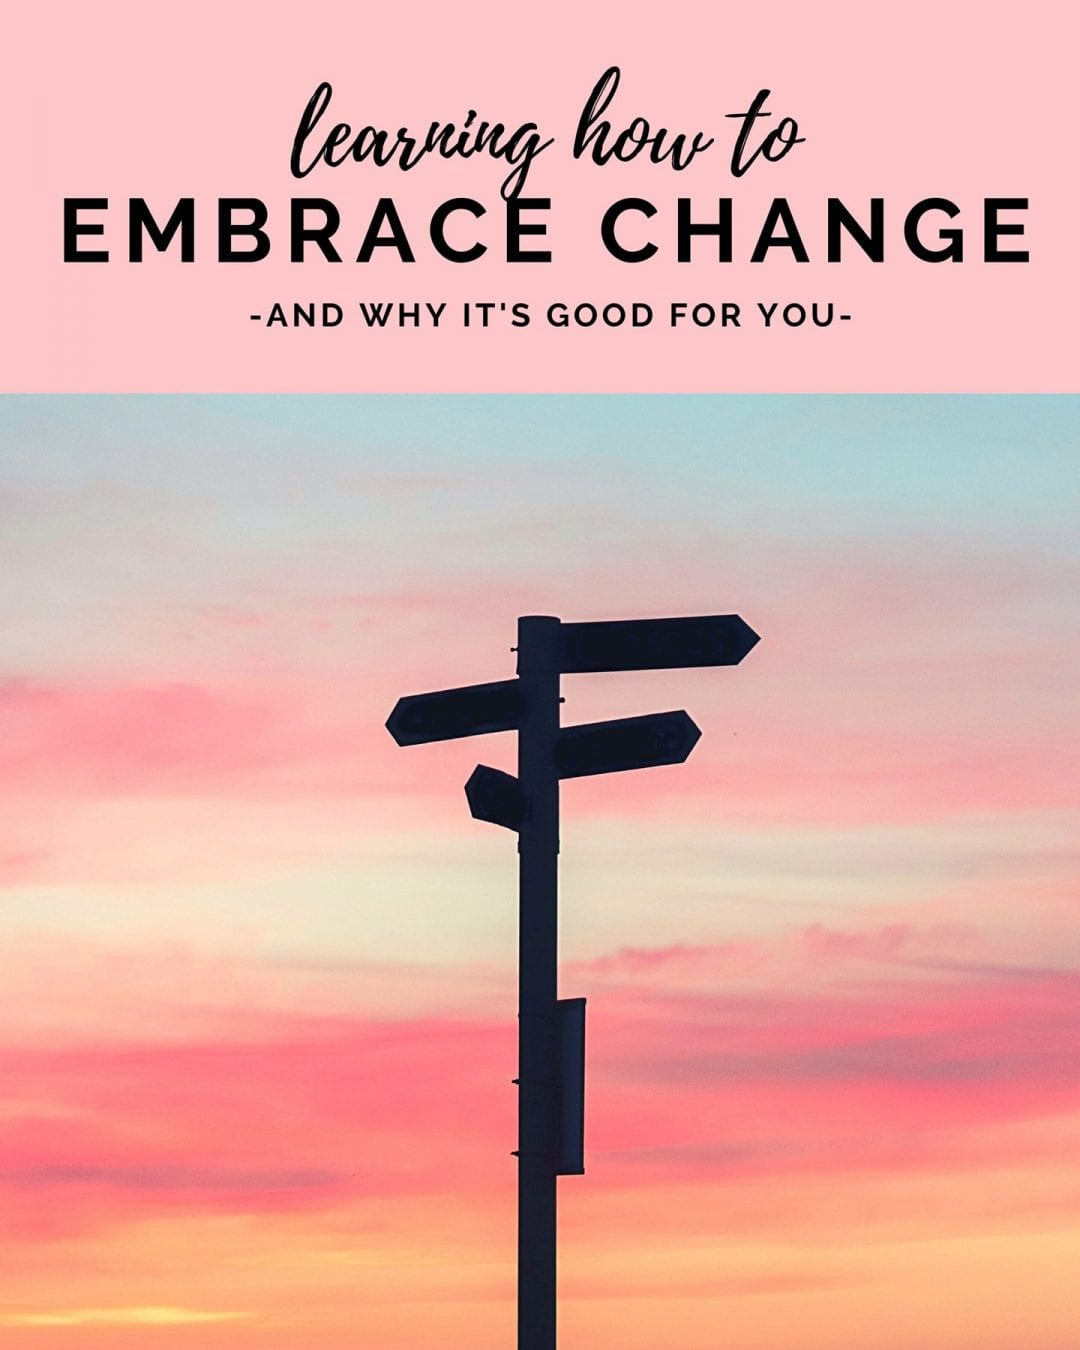 tips on how to embrace change and grow